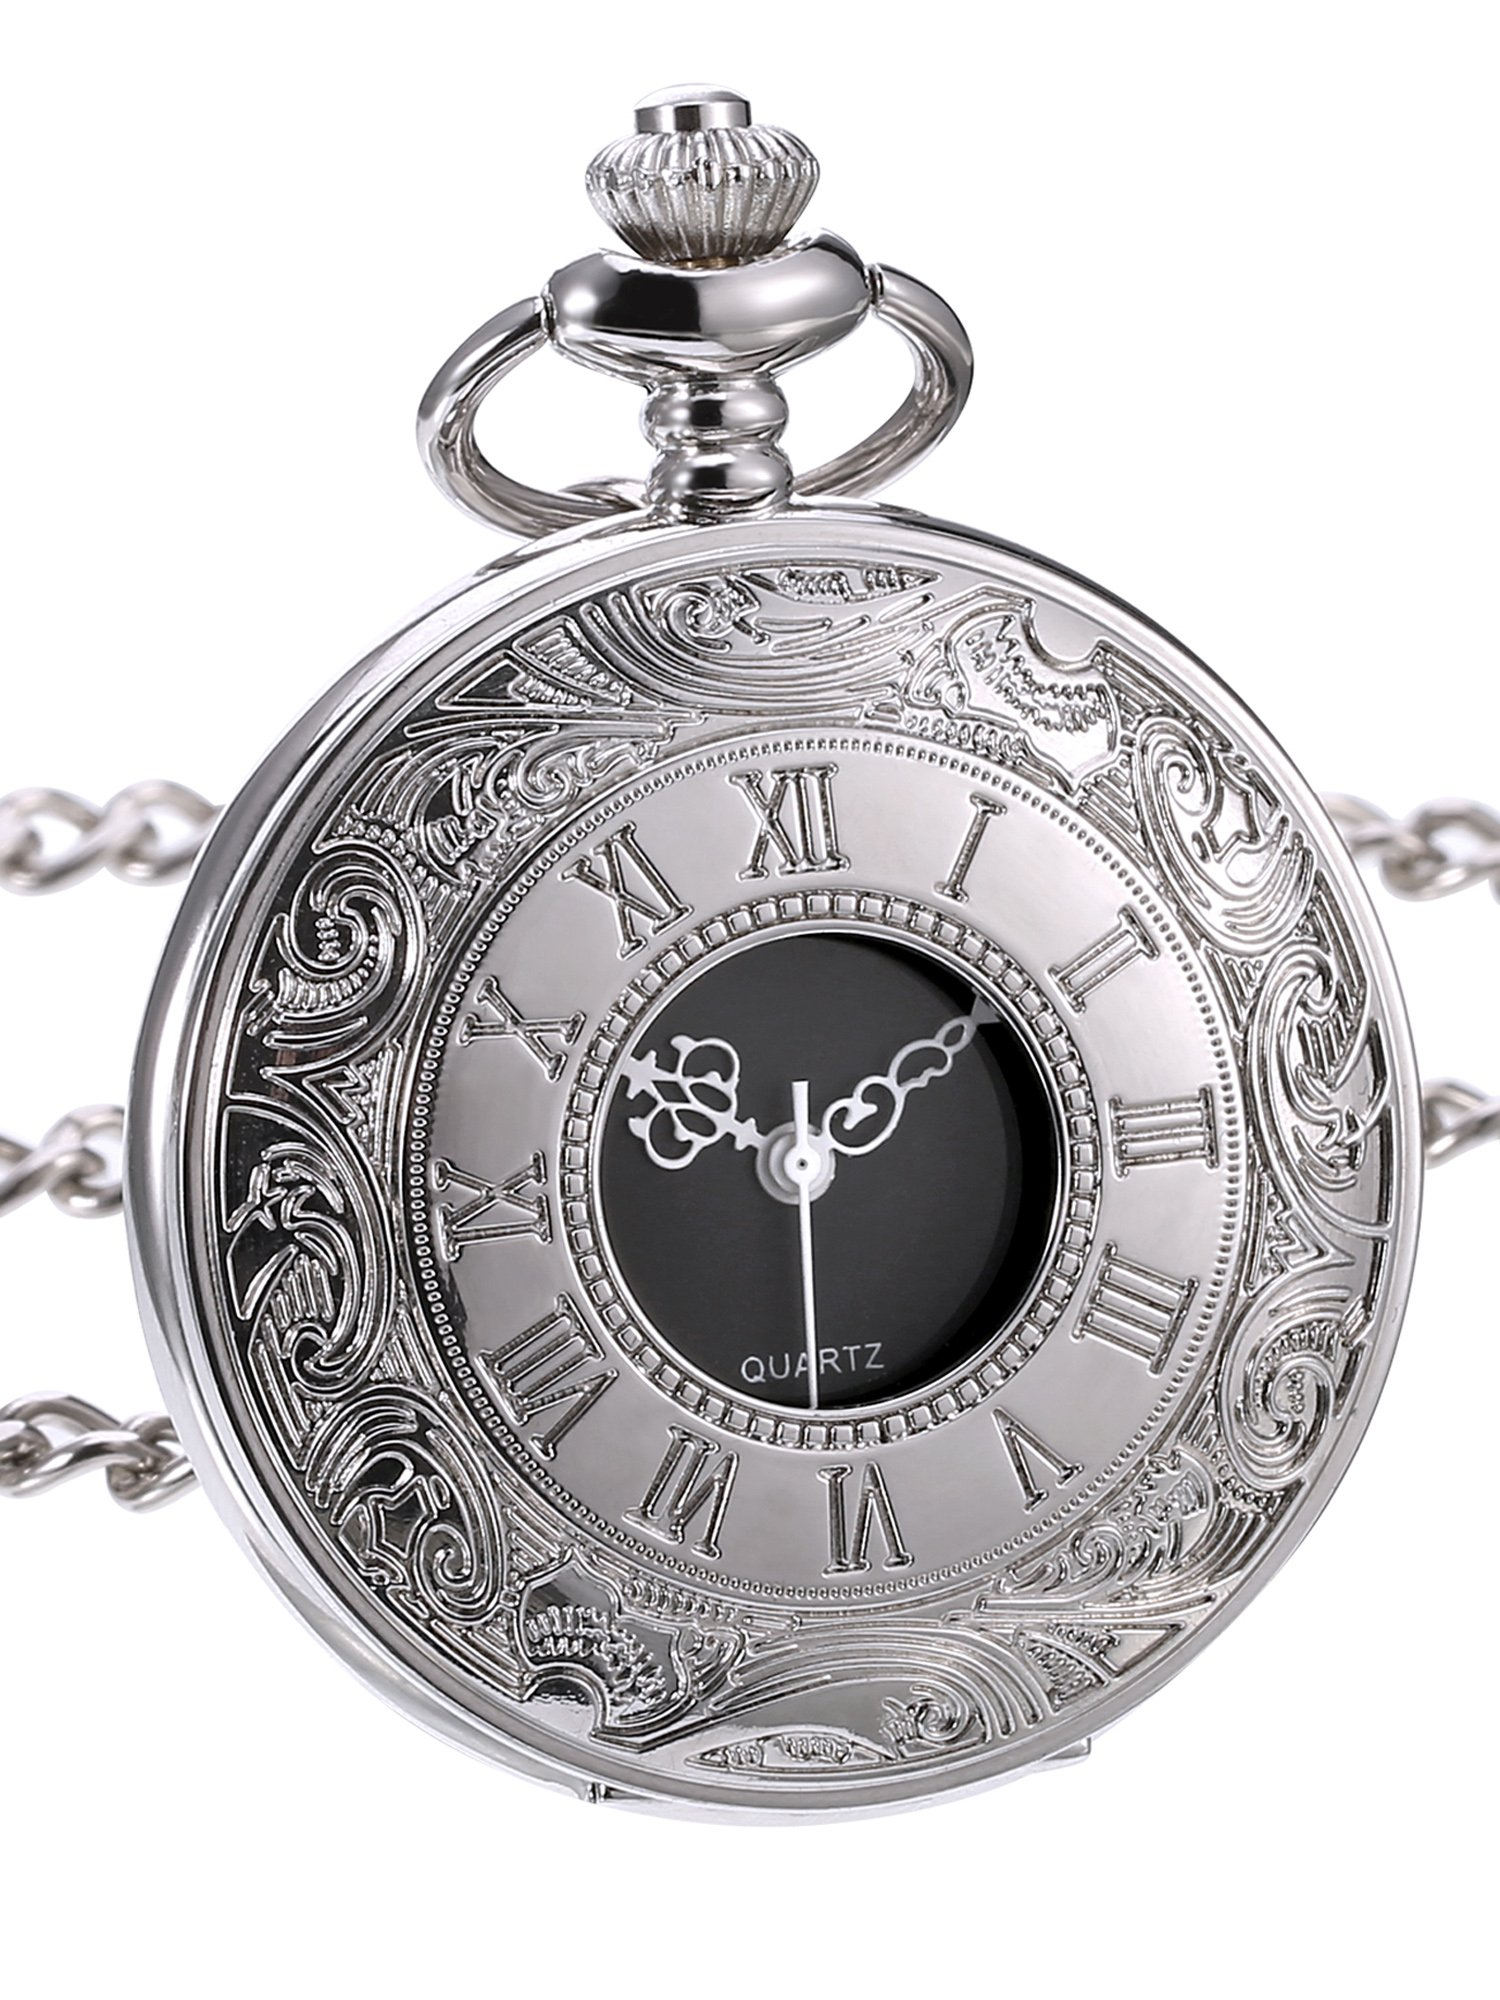 Hicarer Classic Quartz Pocket Watch with Roman Numerals Scale and Chain Belt by Hicarer